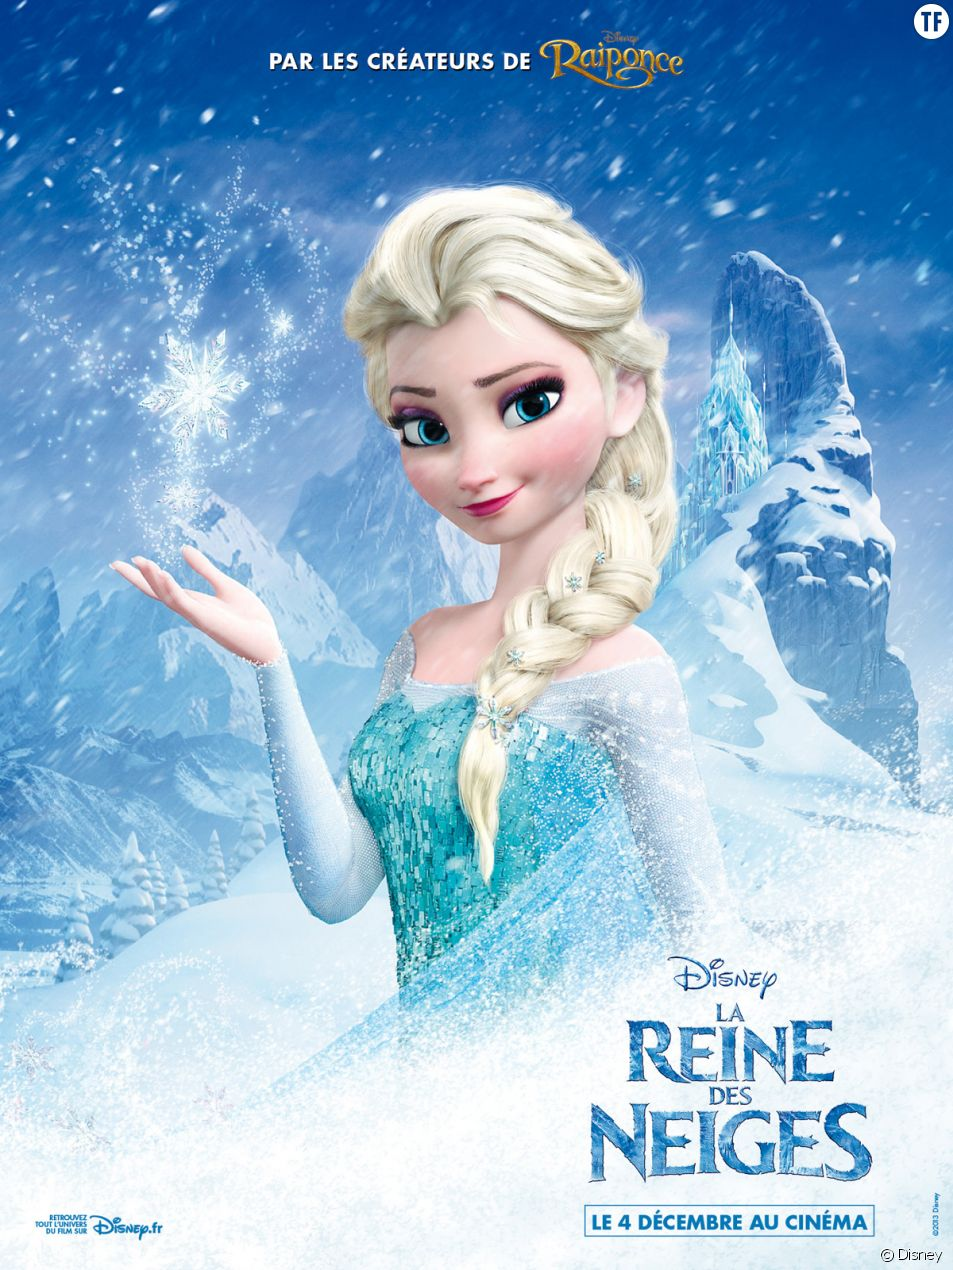 La Reine Des Neiges Le Chant Du Renne : reine, neiges, chant, renne, Frozen, French, CHARGUIGOU